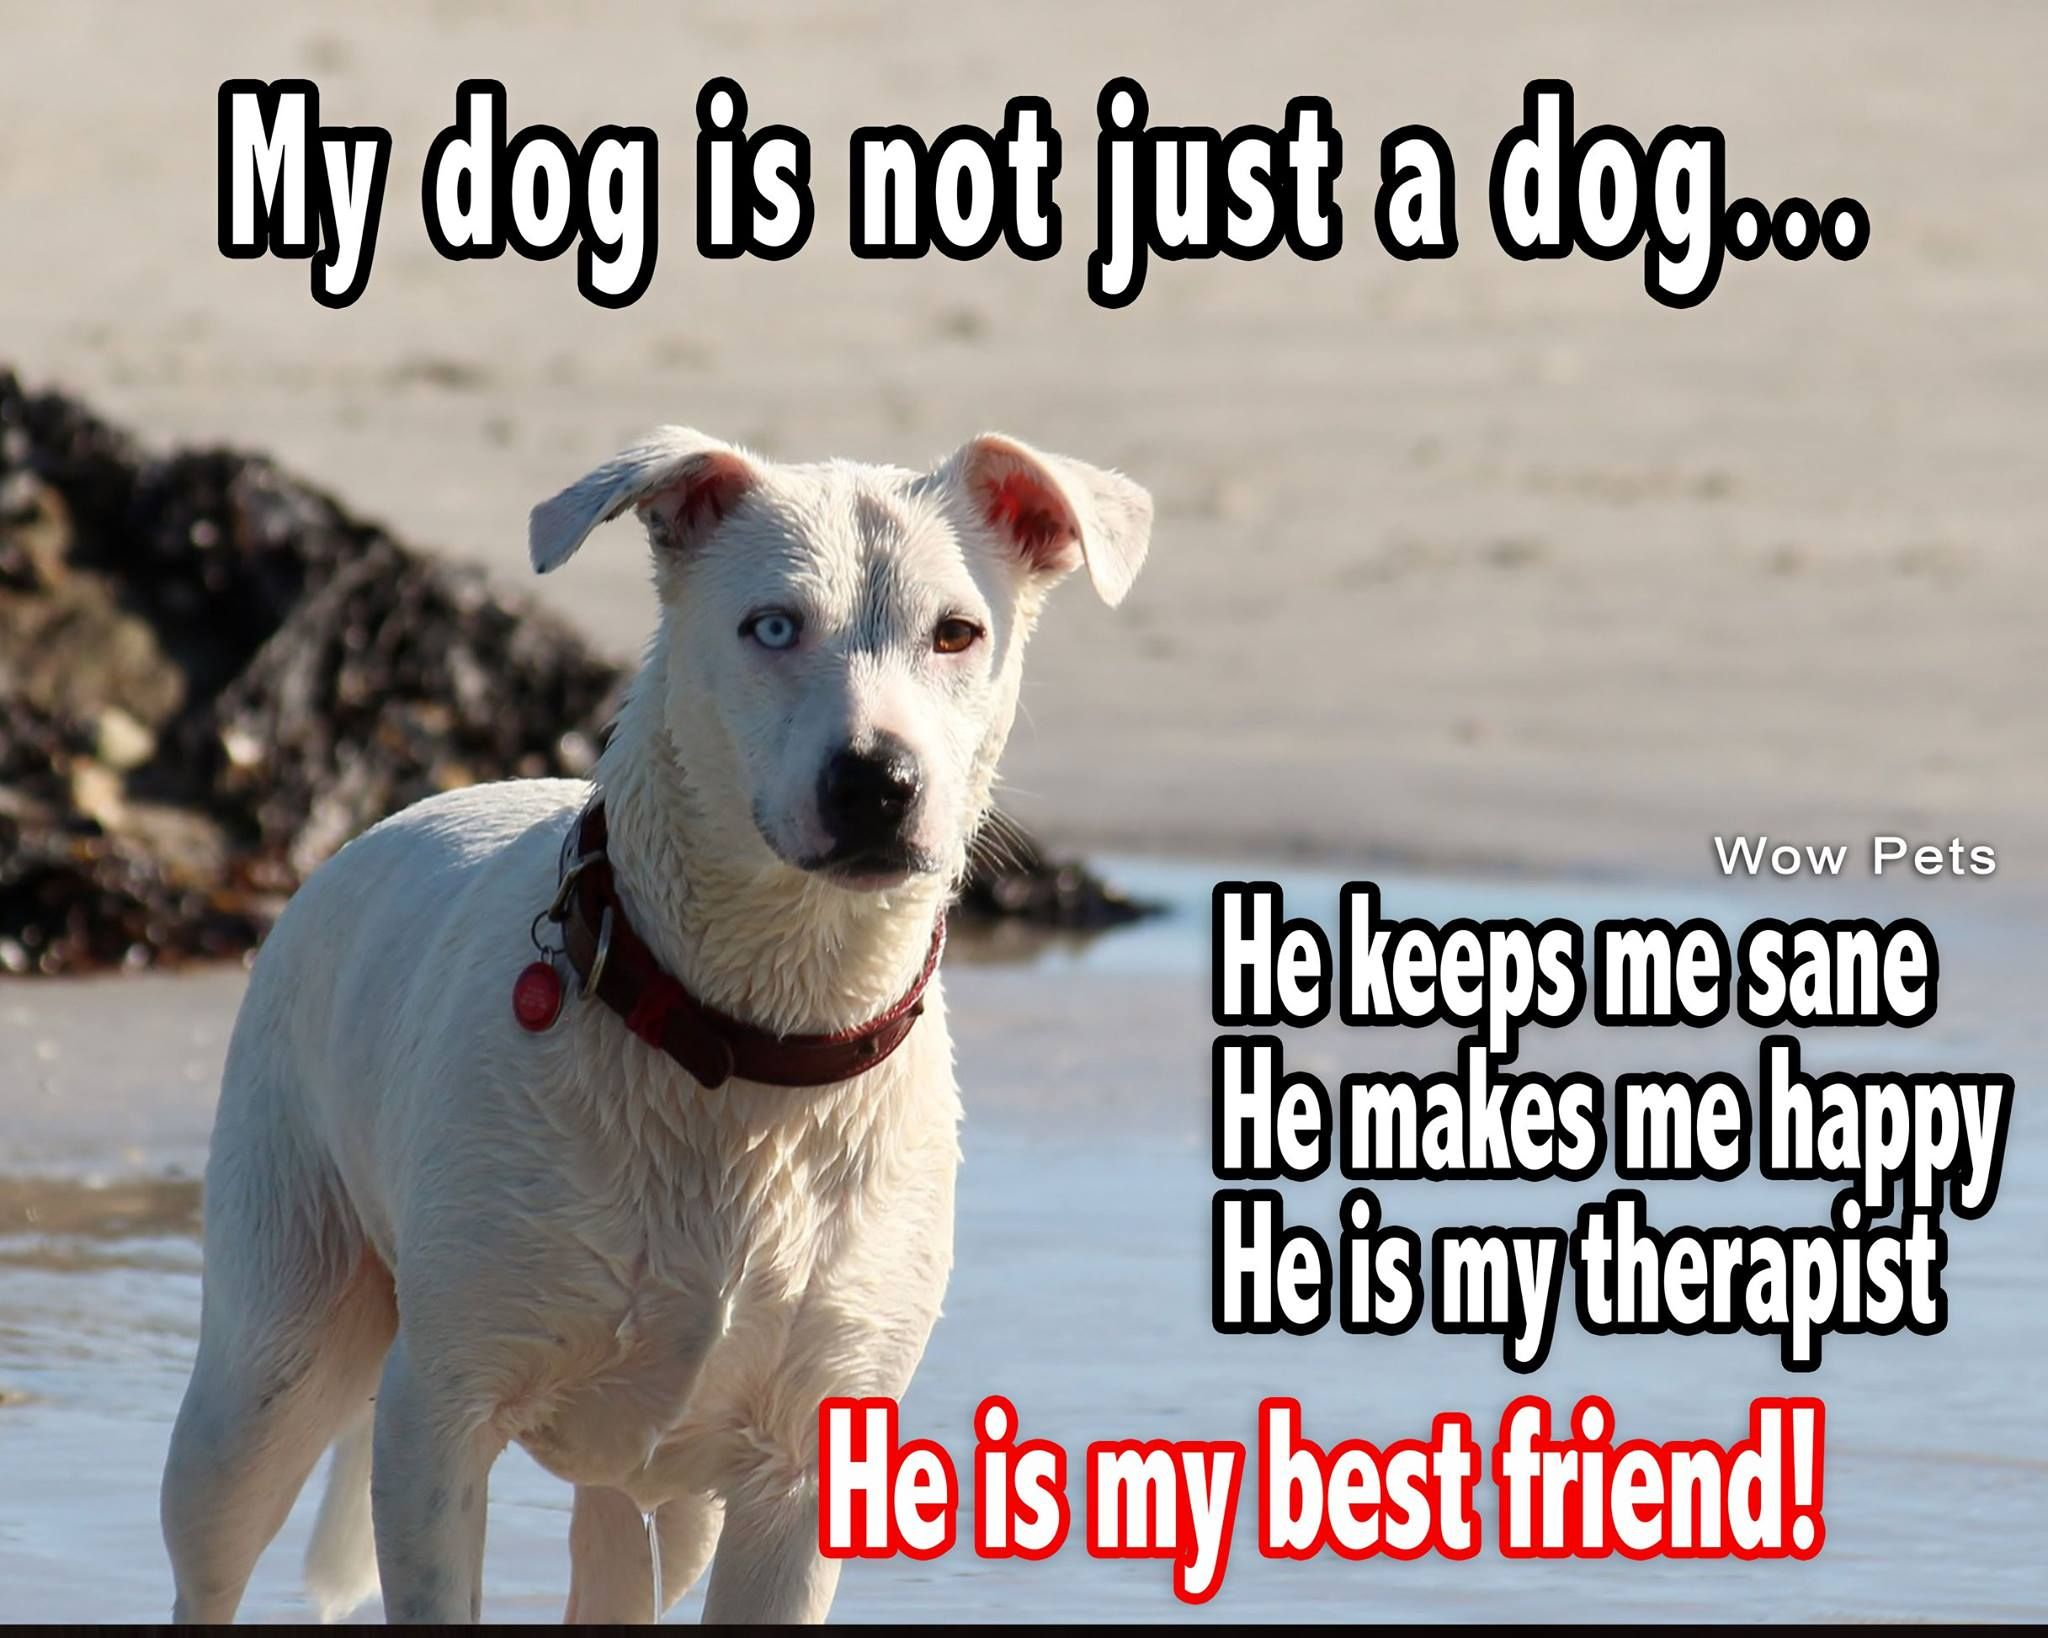 Dog Best Friend Quotes My Dog Is Not Just A Dog He Is My Best Friend | Animal Quotes  Dog Best Friend Quotes